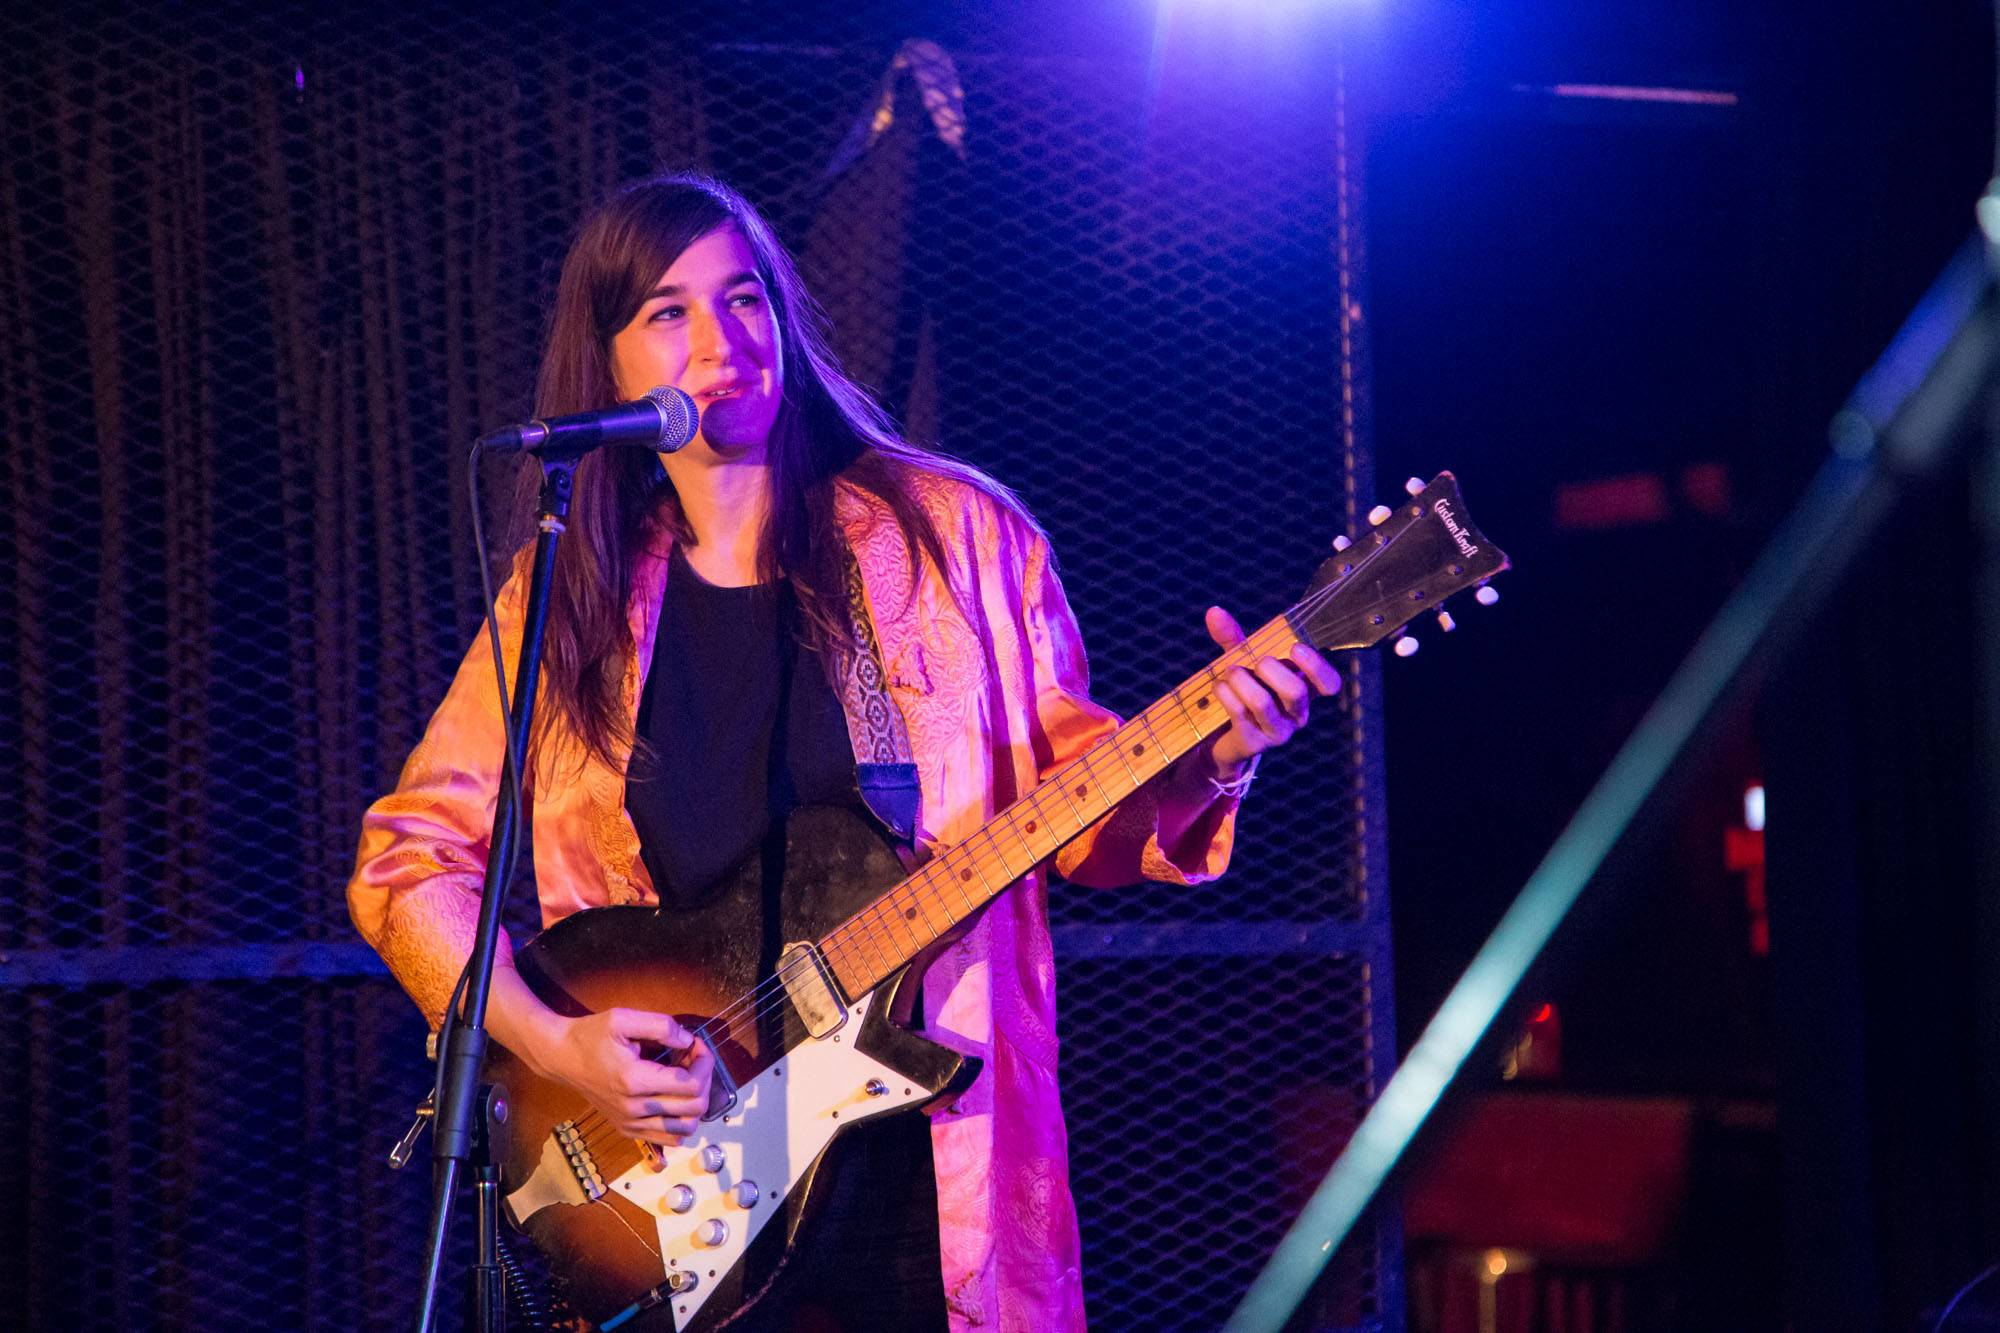 Jenny O at the Biltmore Cabaret, Vancouver, Sept 23 2017. Kirk Chantraine photo.